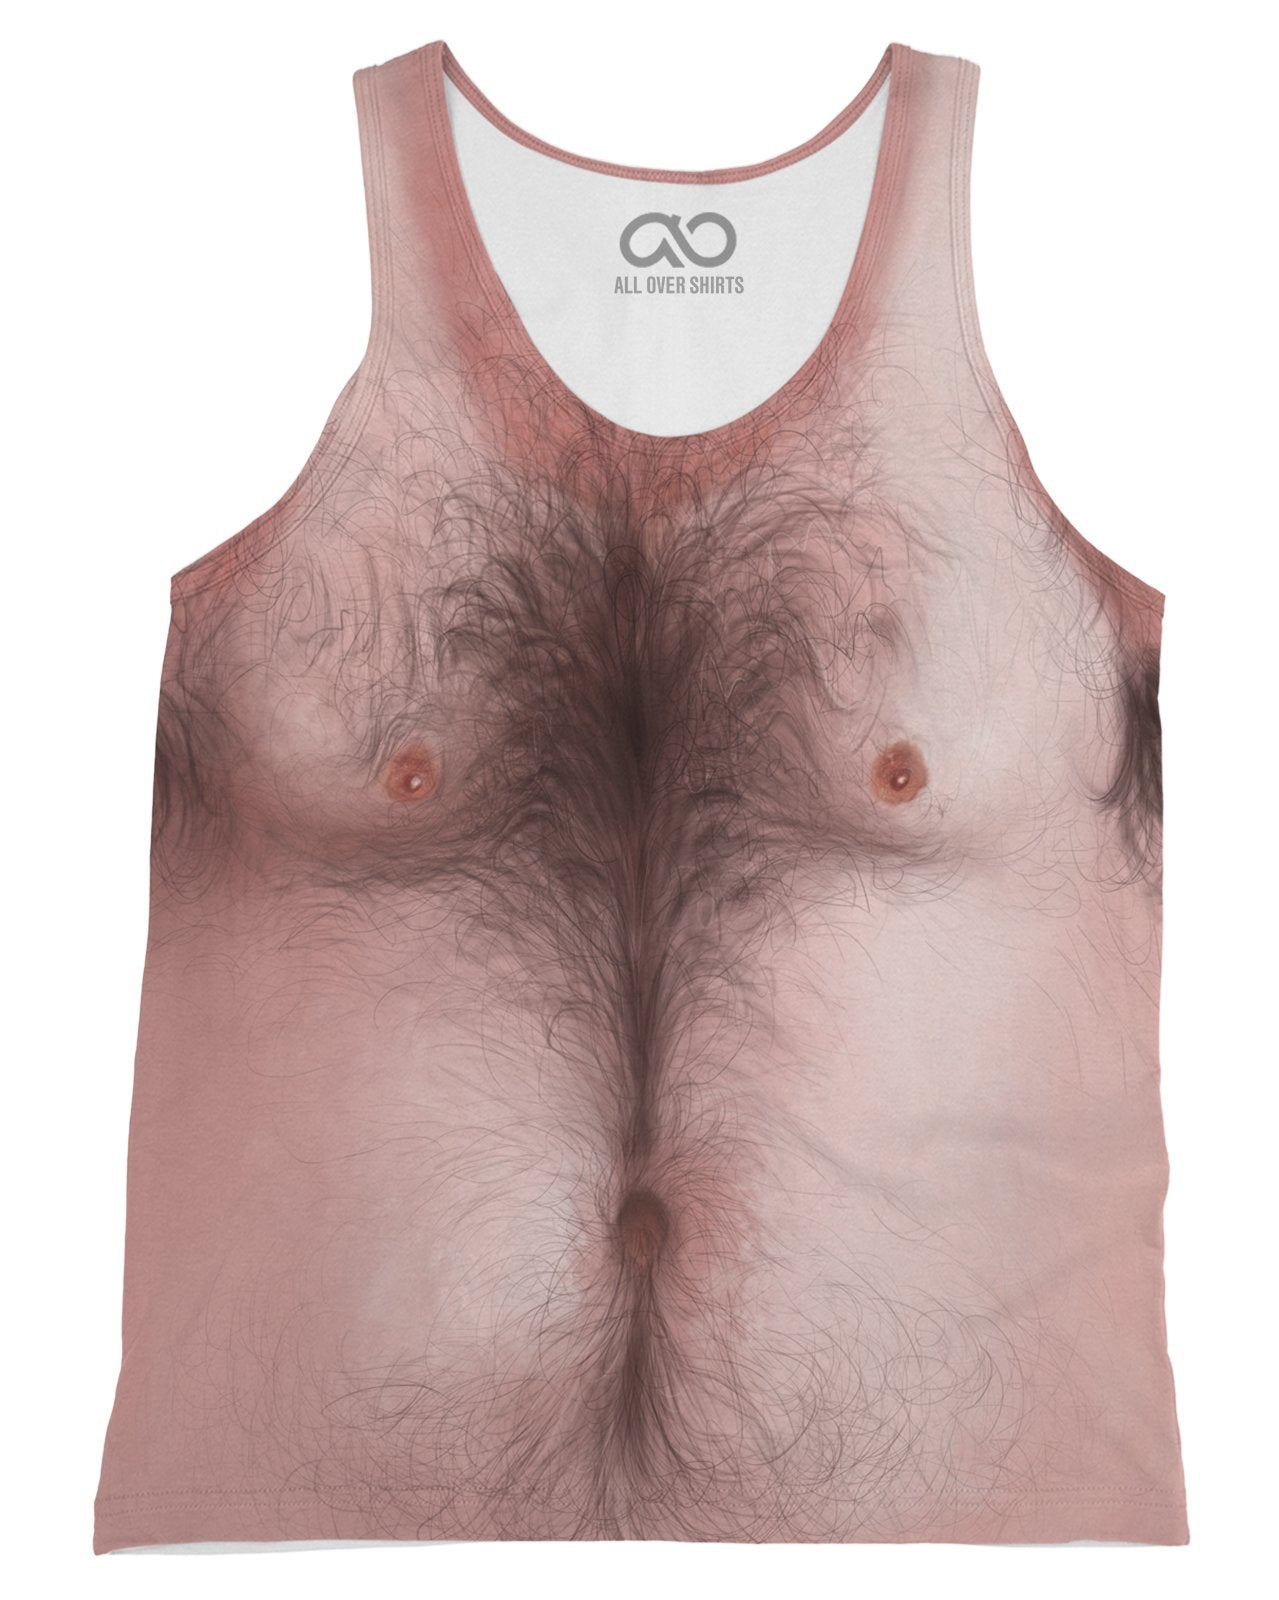 Hairy Chest Tank Top All Over Shirts Tank Top 24 99 Usd Allovershirts Com